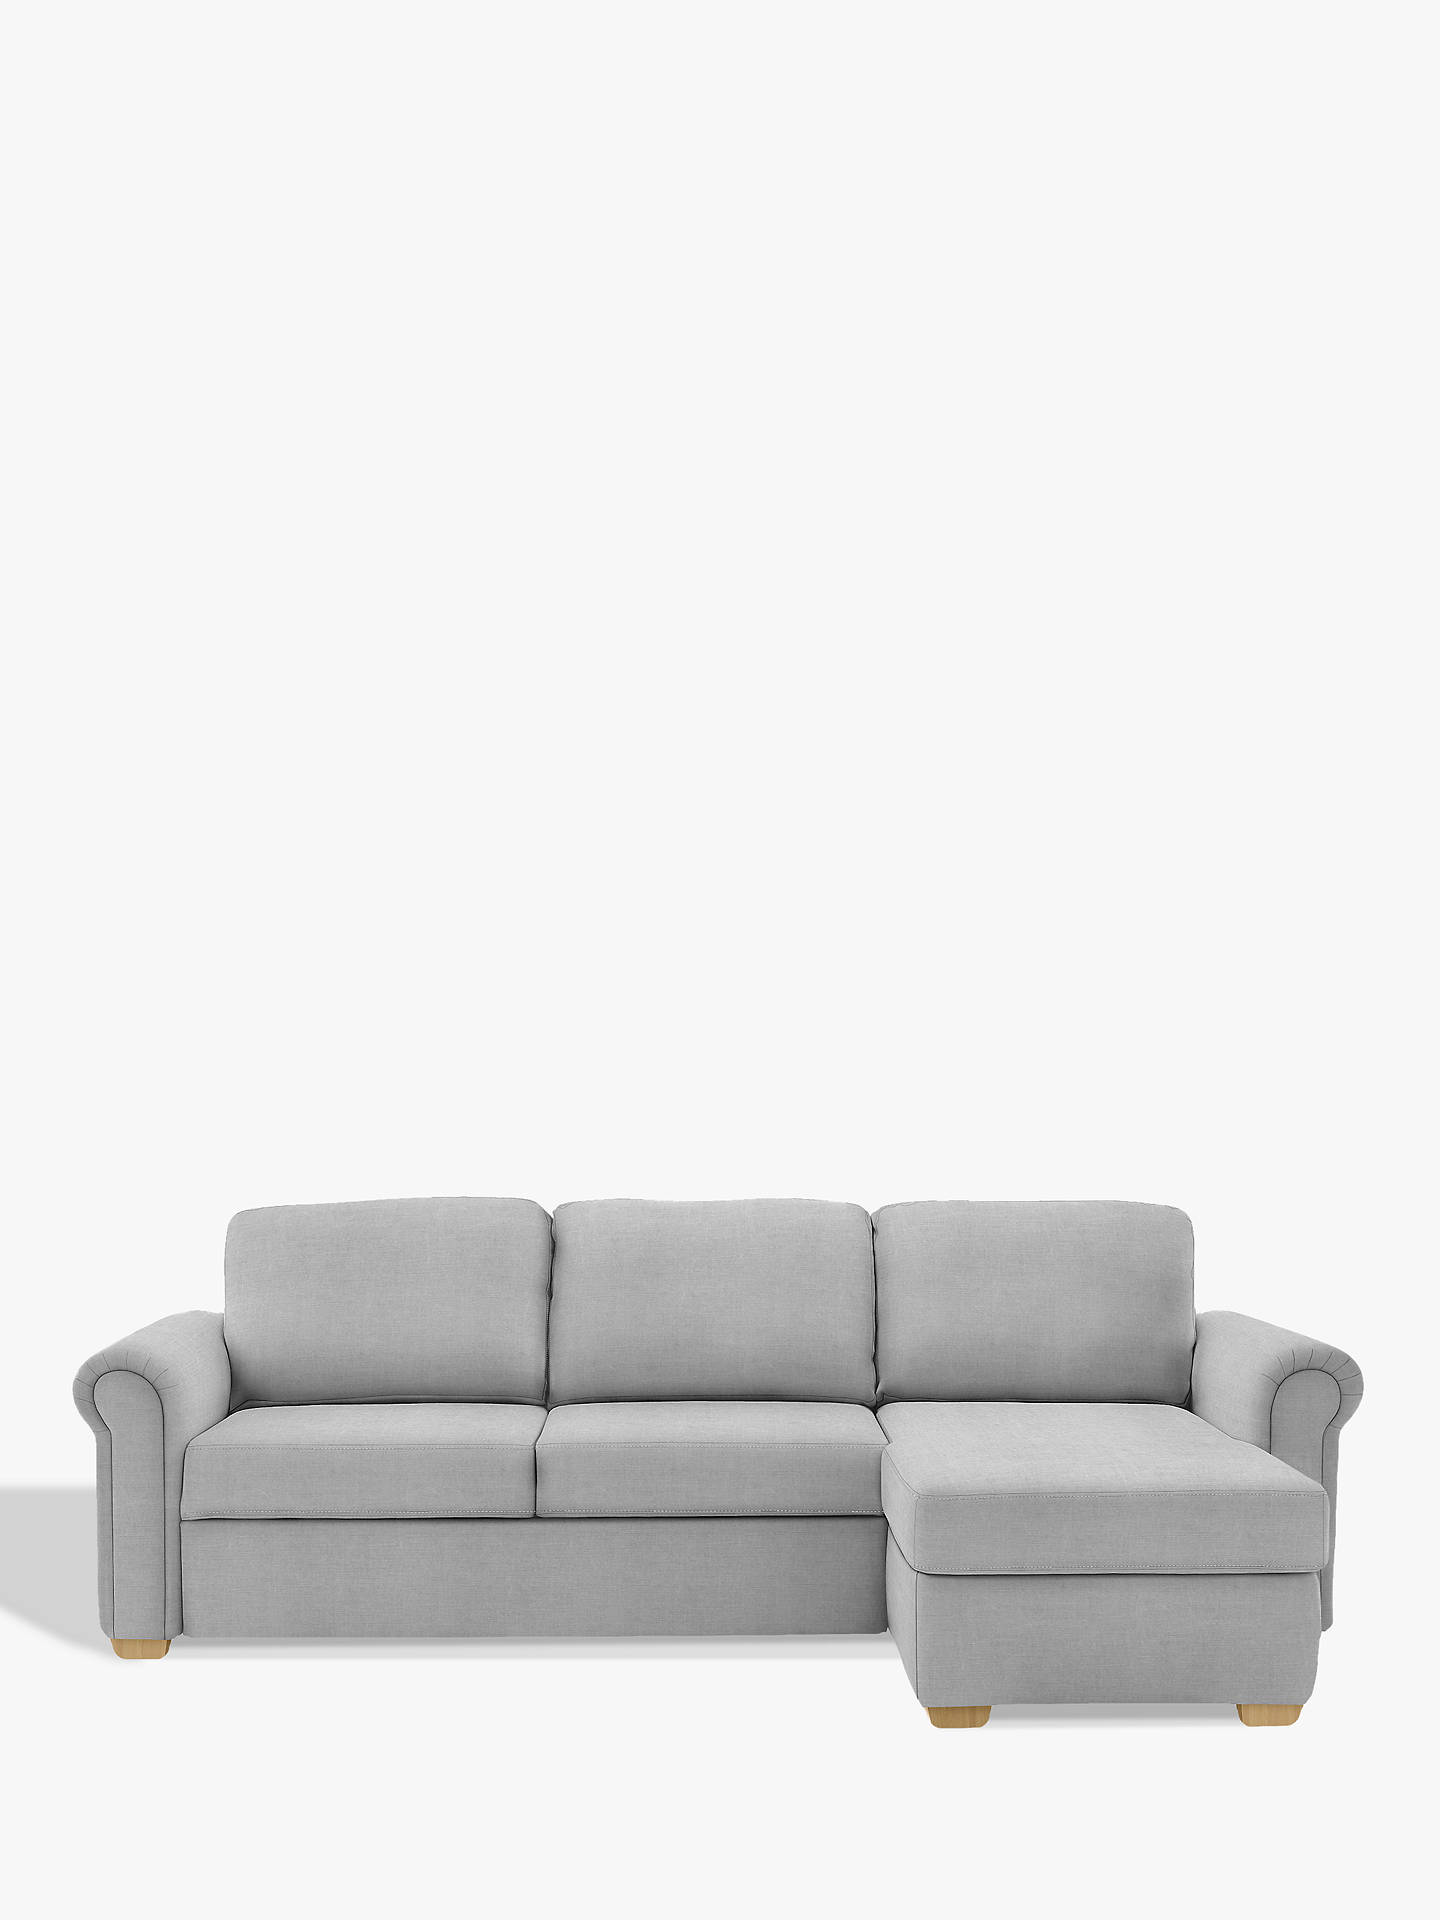 Astounding John Lewis Sacha Large Scroll Arm Storage Sofa Bed At John Gmtry Best Dining Table And Chair Ideas Images Gmtryco